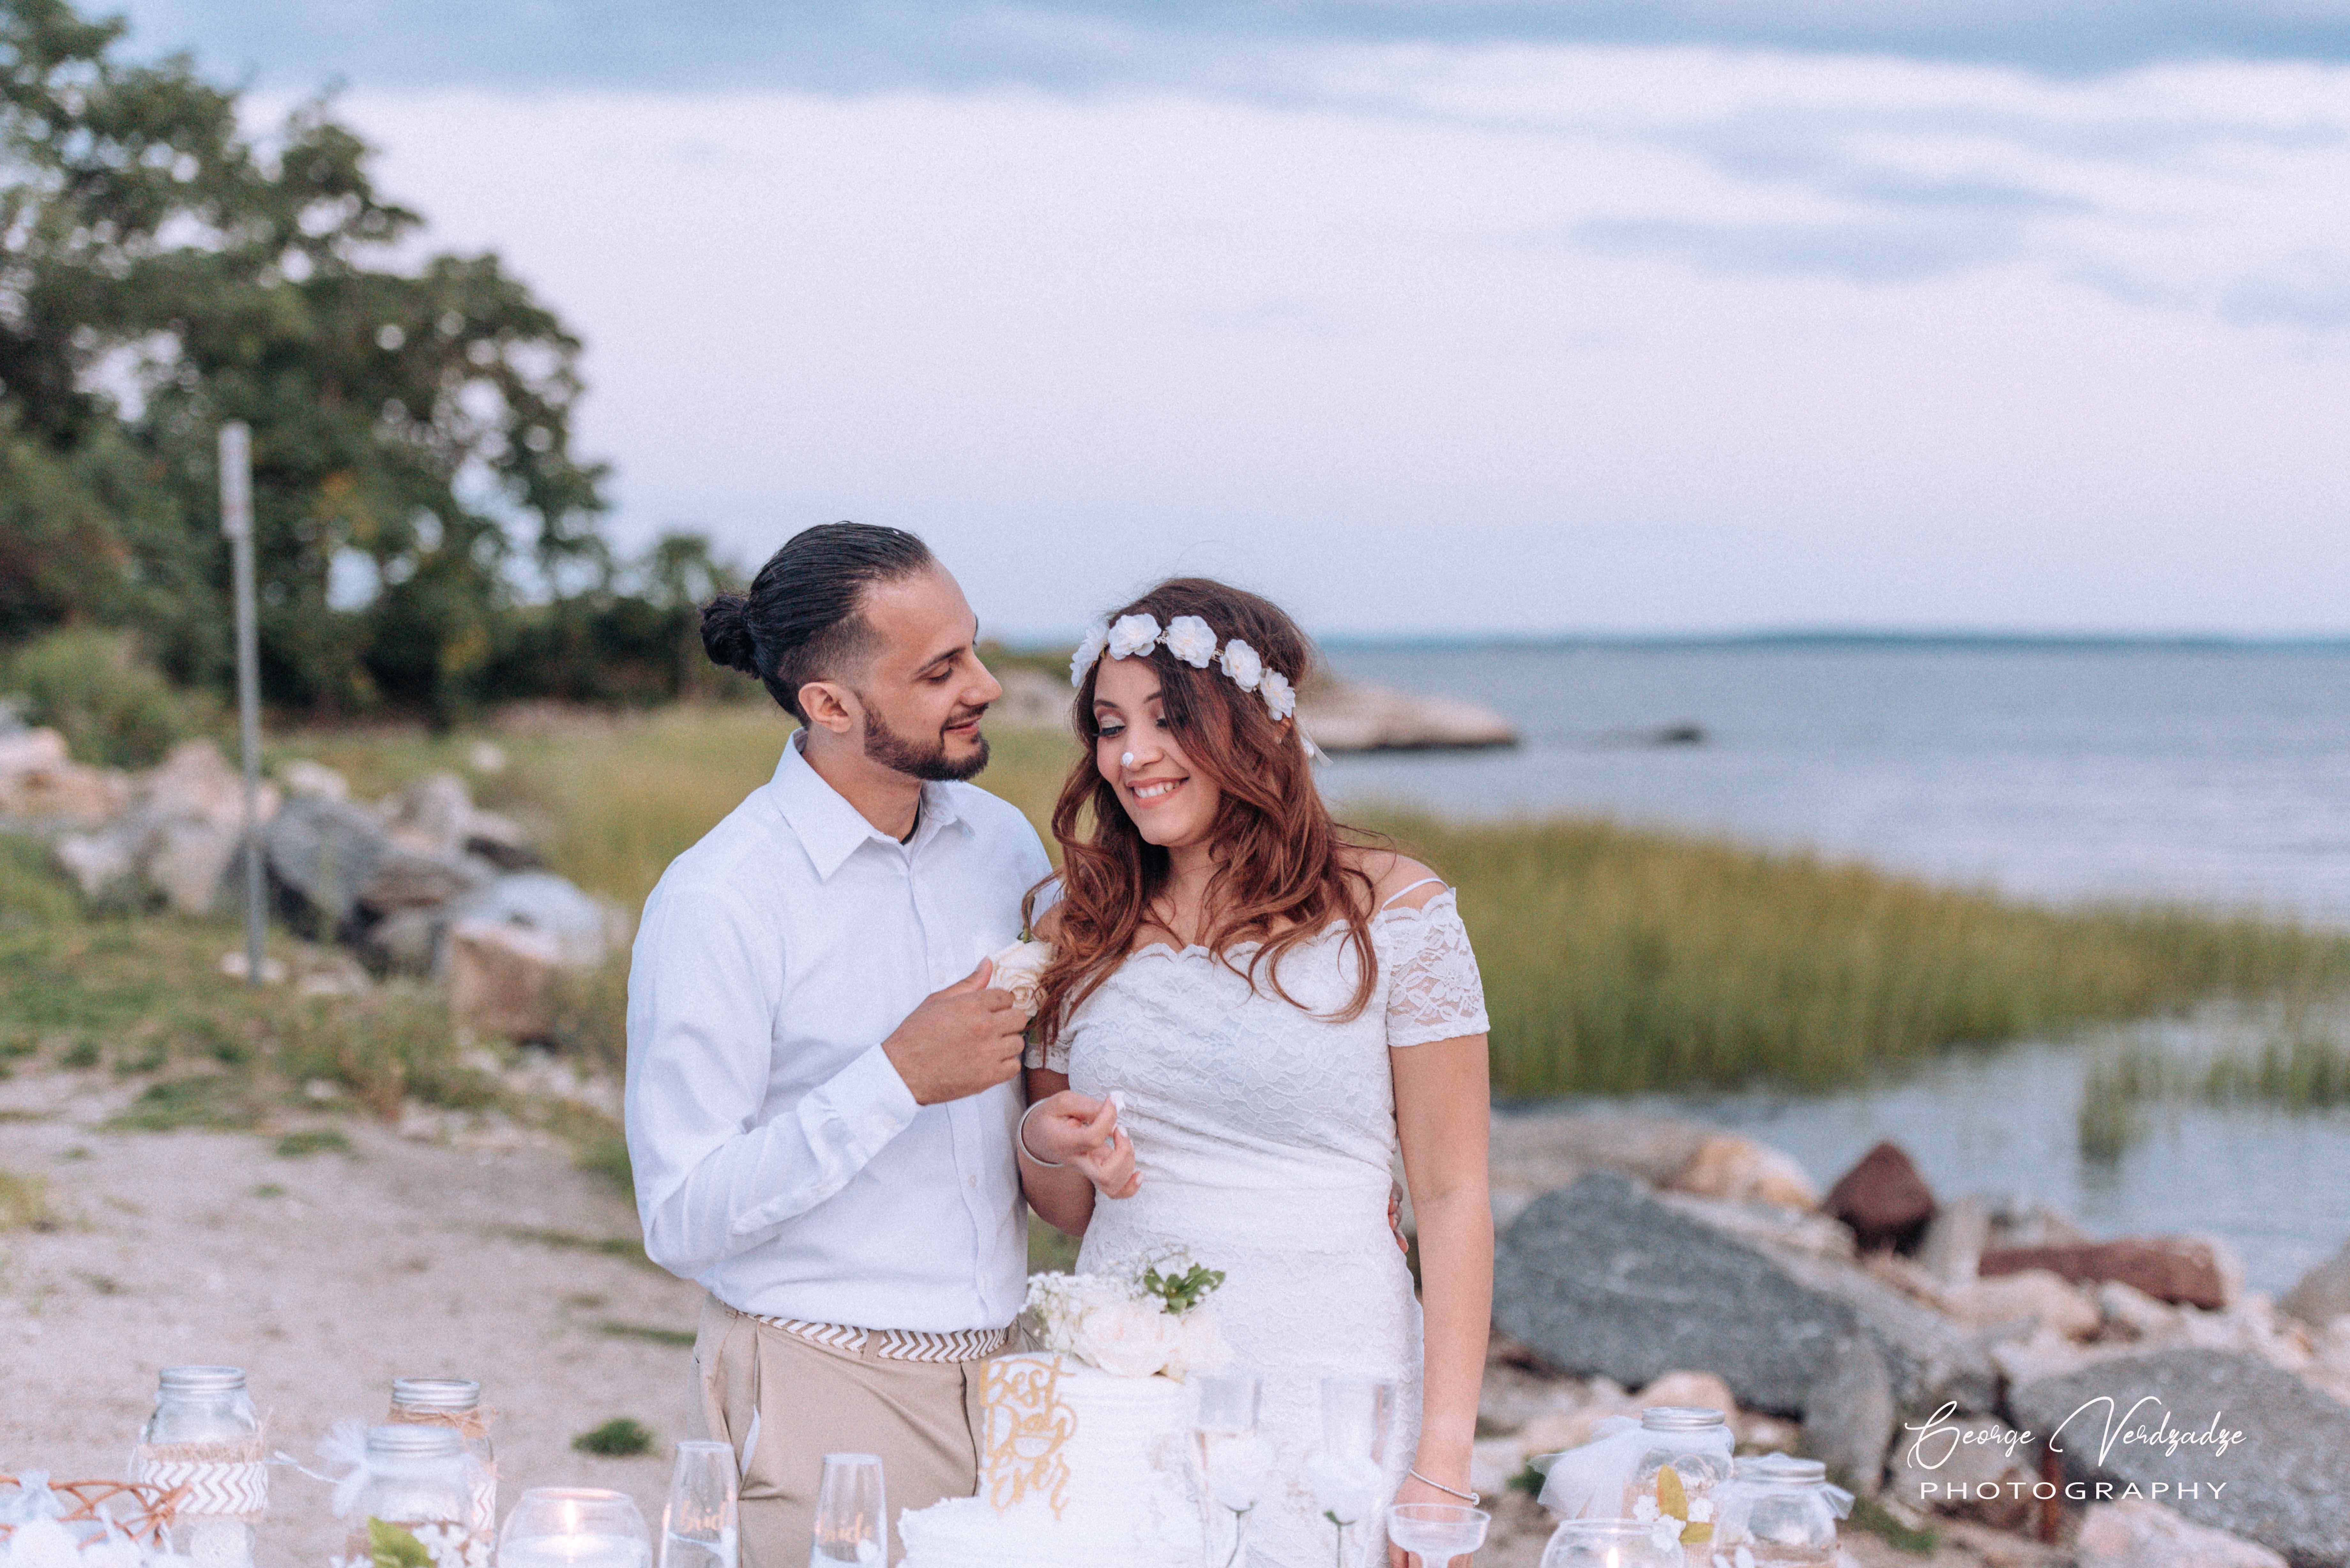 Wedding photography at Cove Beach